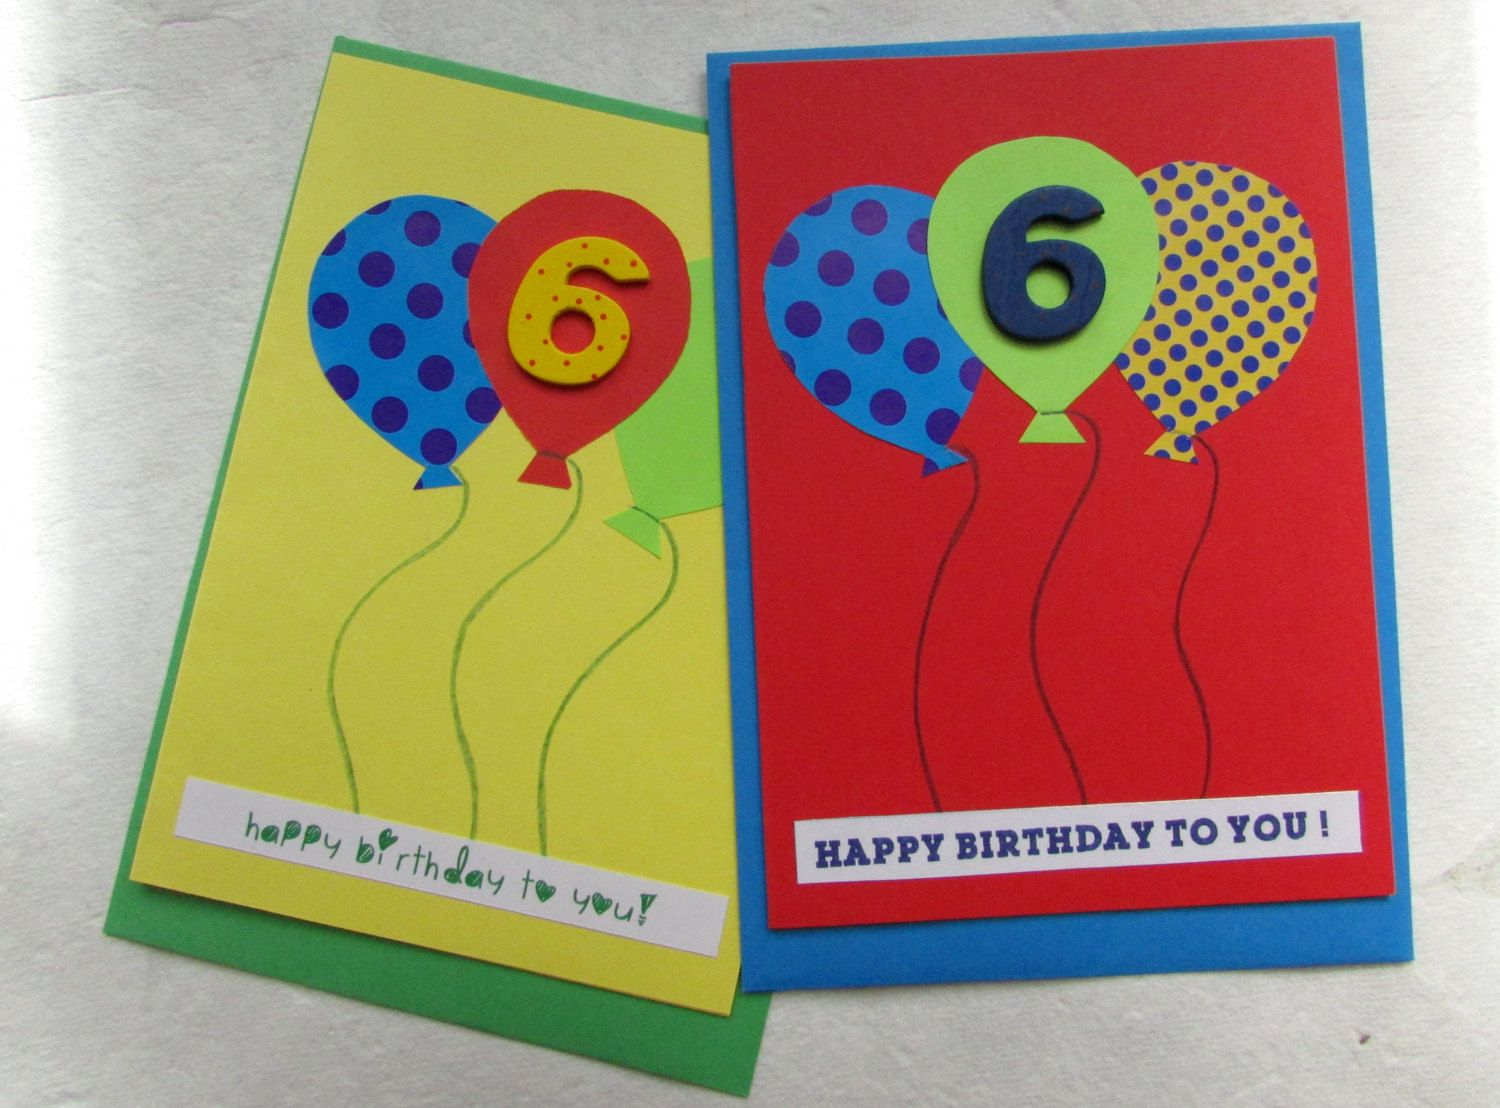 Age 6 Birthday Card With Balloons